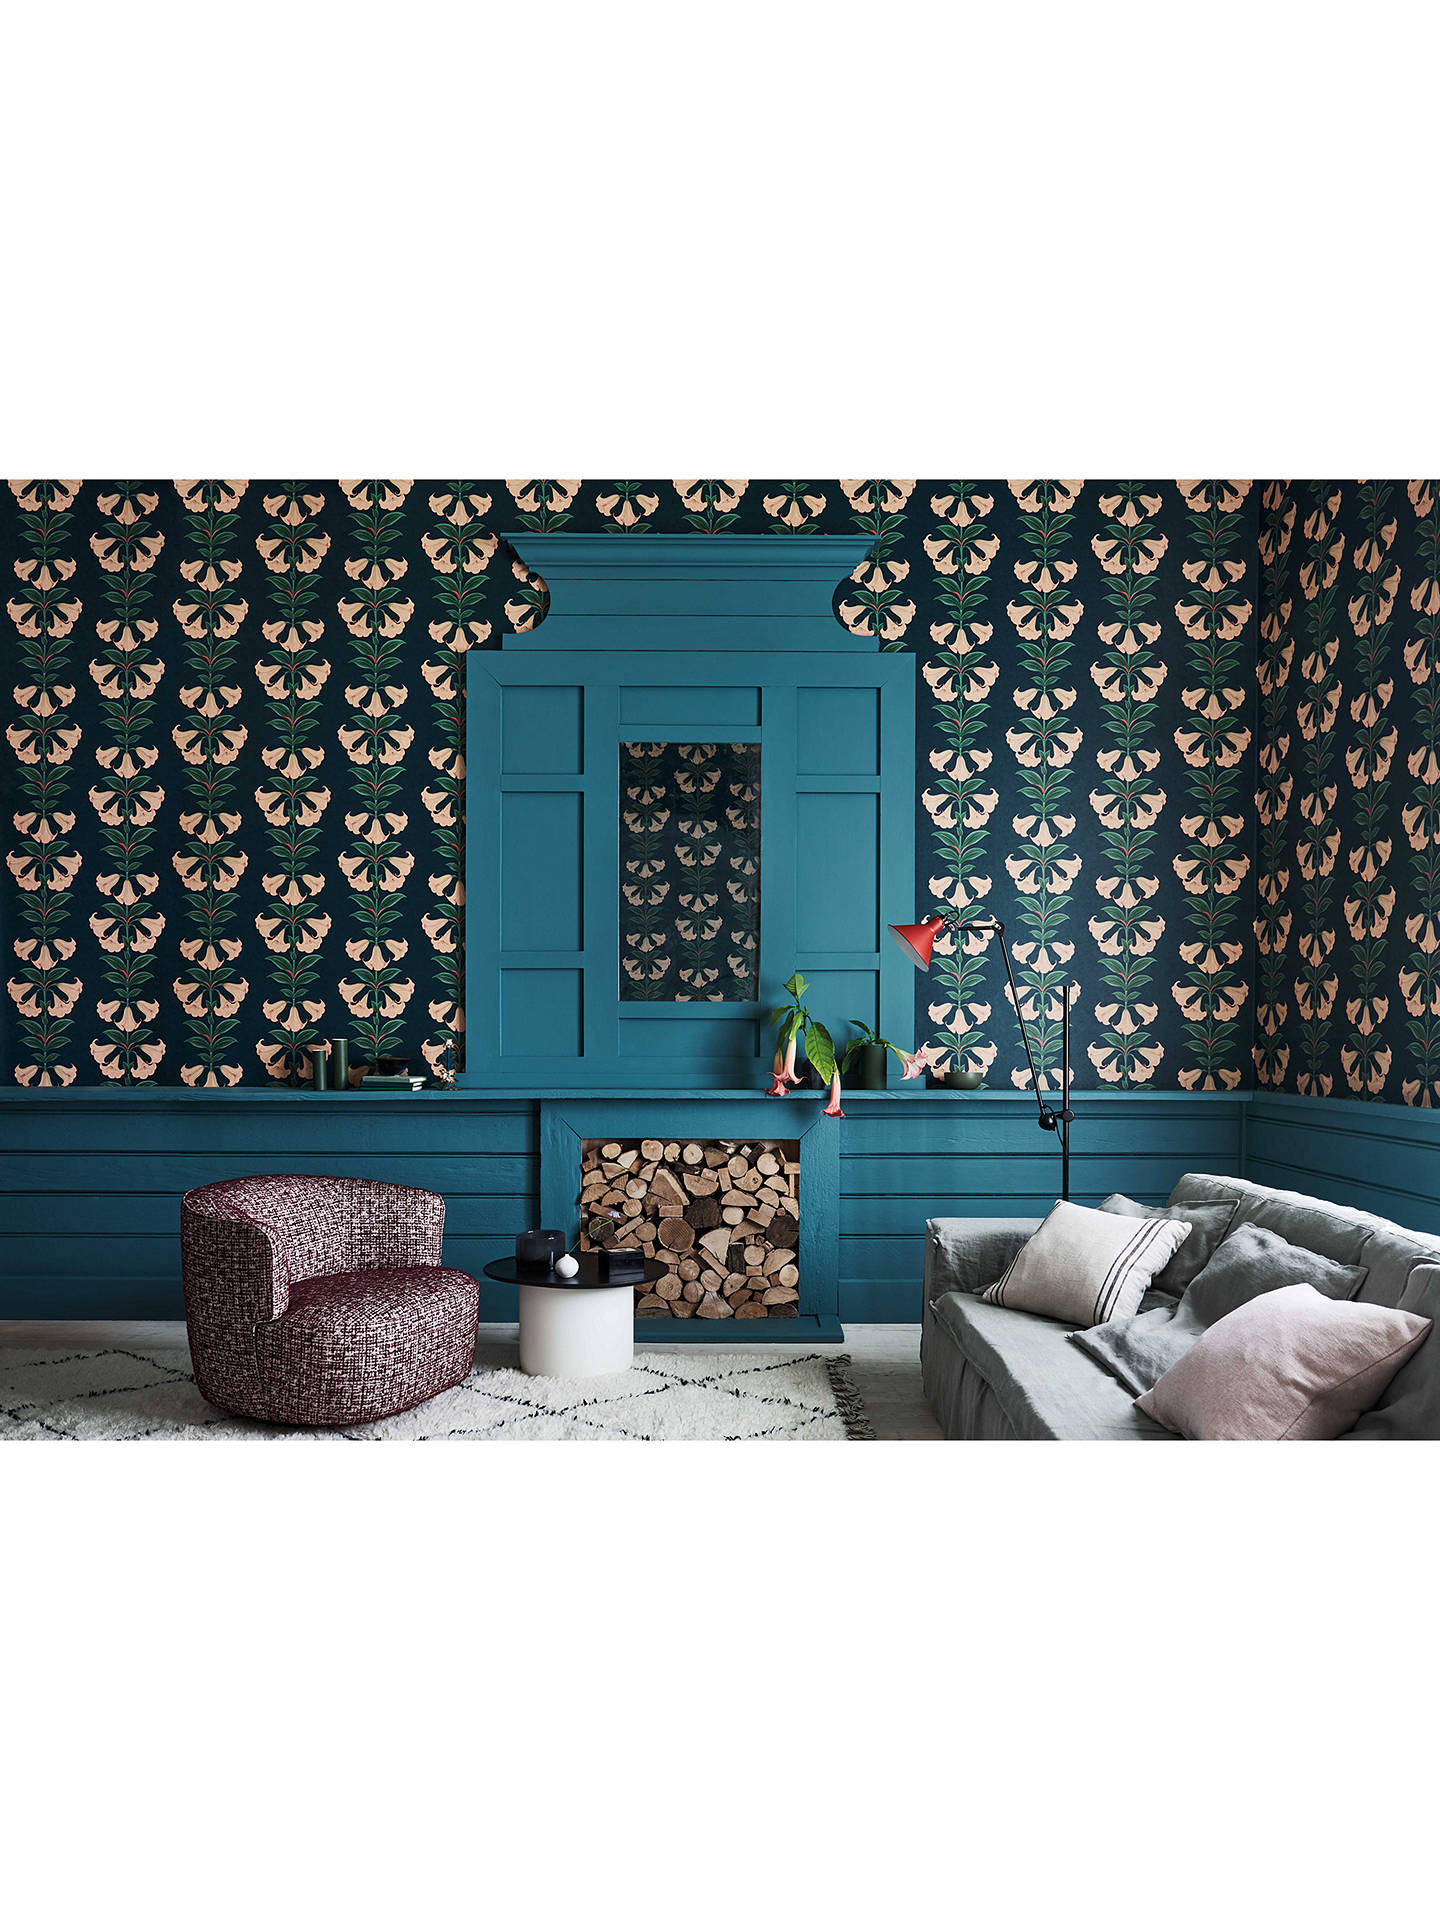 Buy Cole & Son Angel's Trumpet Wallpaper, 117/3009 Online at johnlewis.com